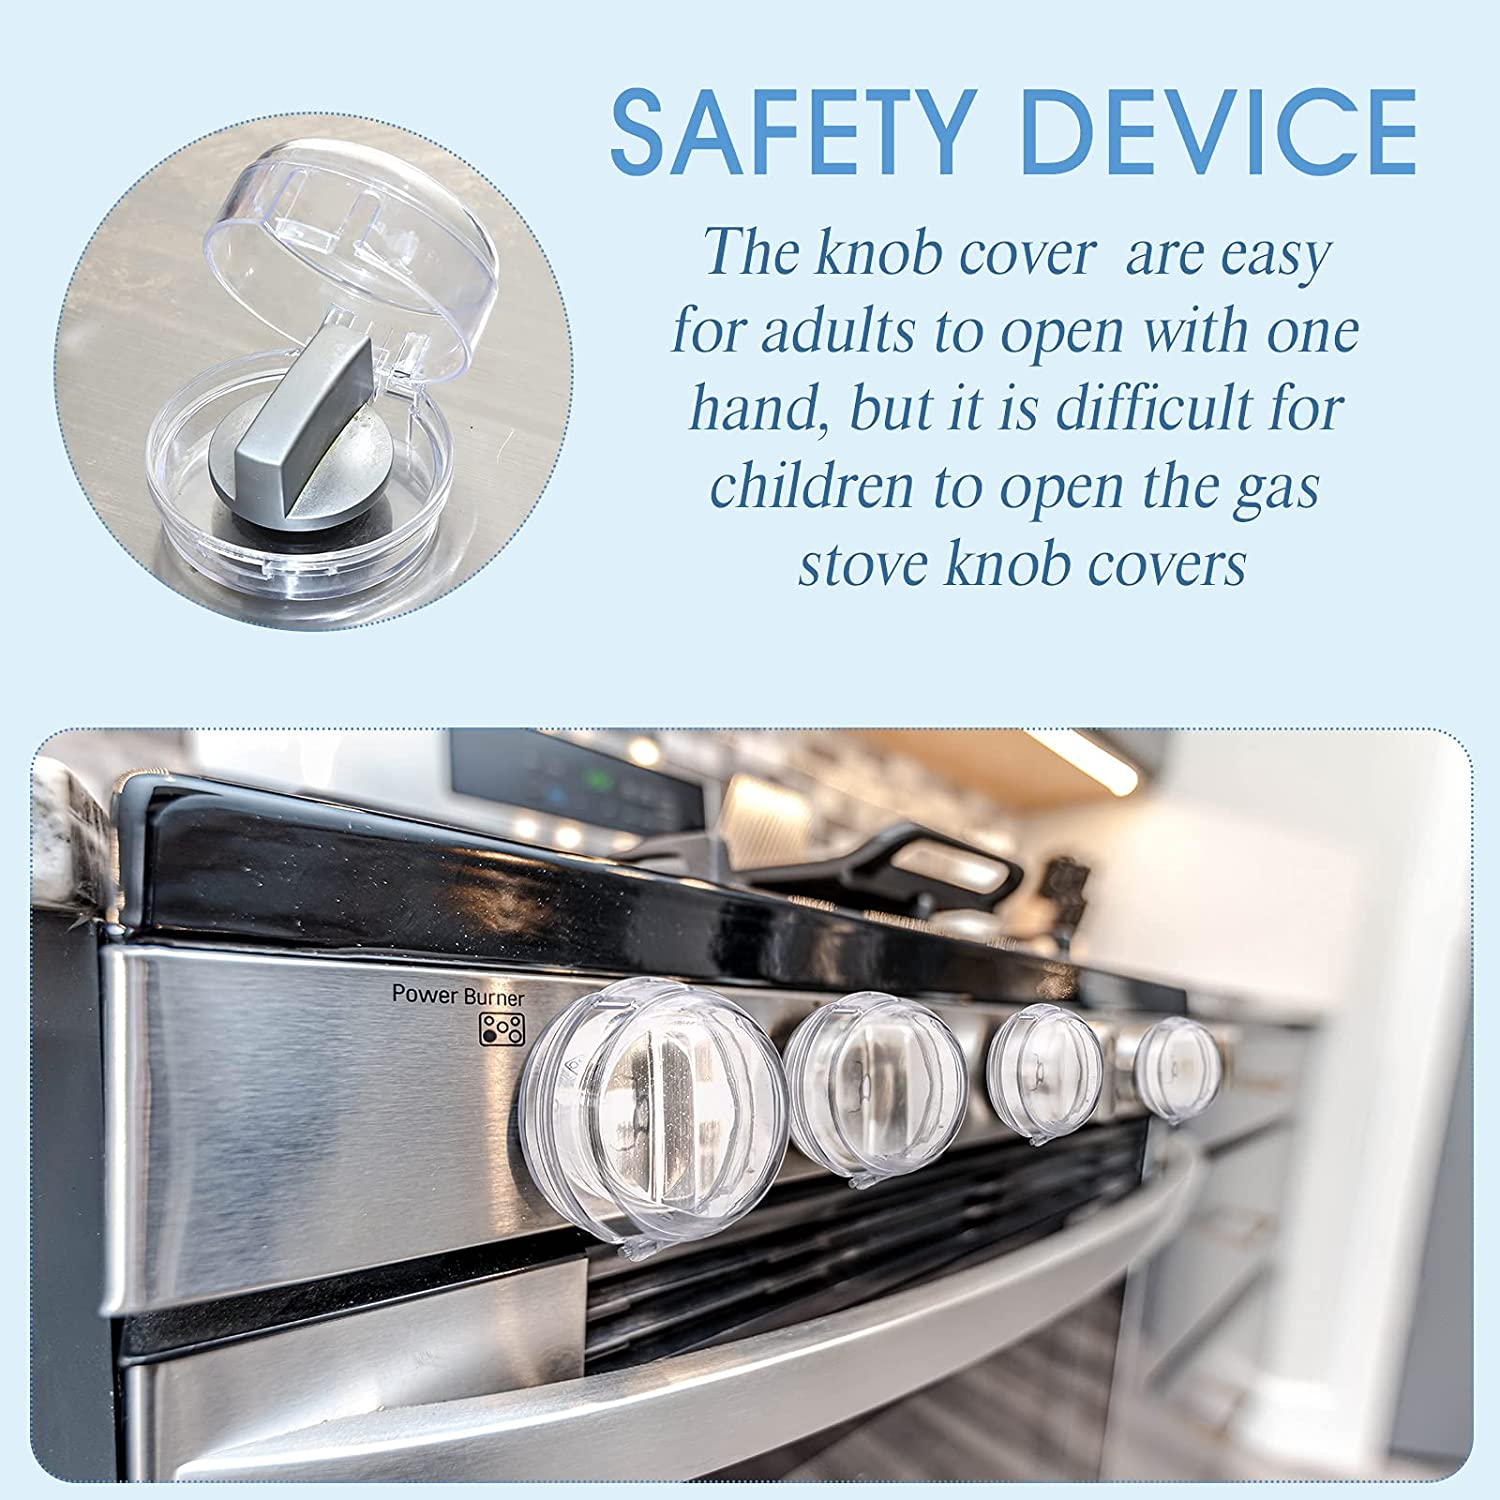 6 Pieces Child Safety Proof Stove Knob Covers and 5 Pieces Cabinet Locks for Child Safety, Gas Stove Knob Covers Childproof Oven Locks for Toddler Kids Home Kitchen Safety Guard Easy to Install